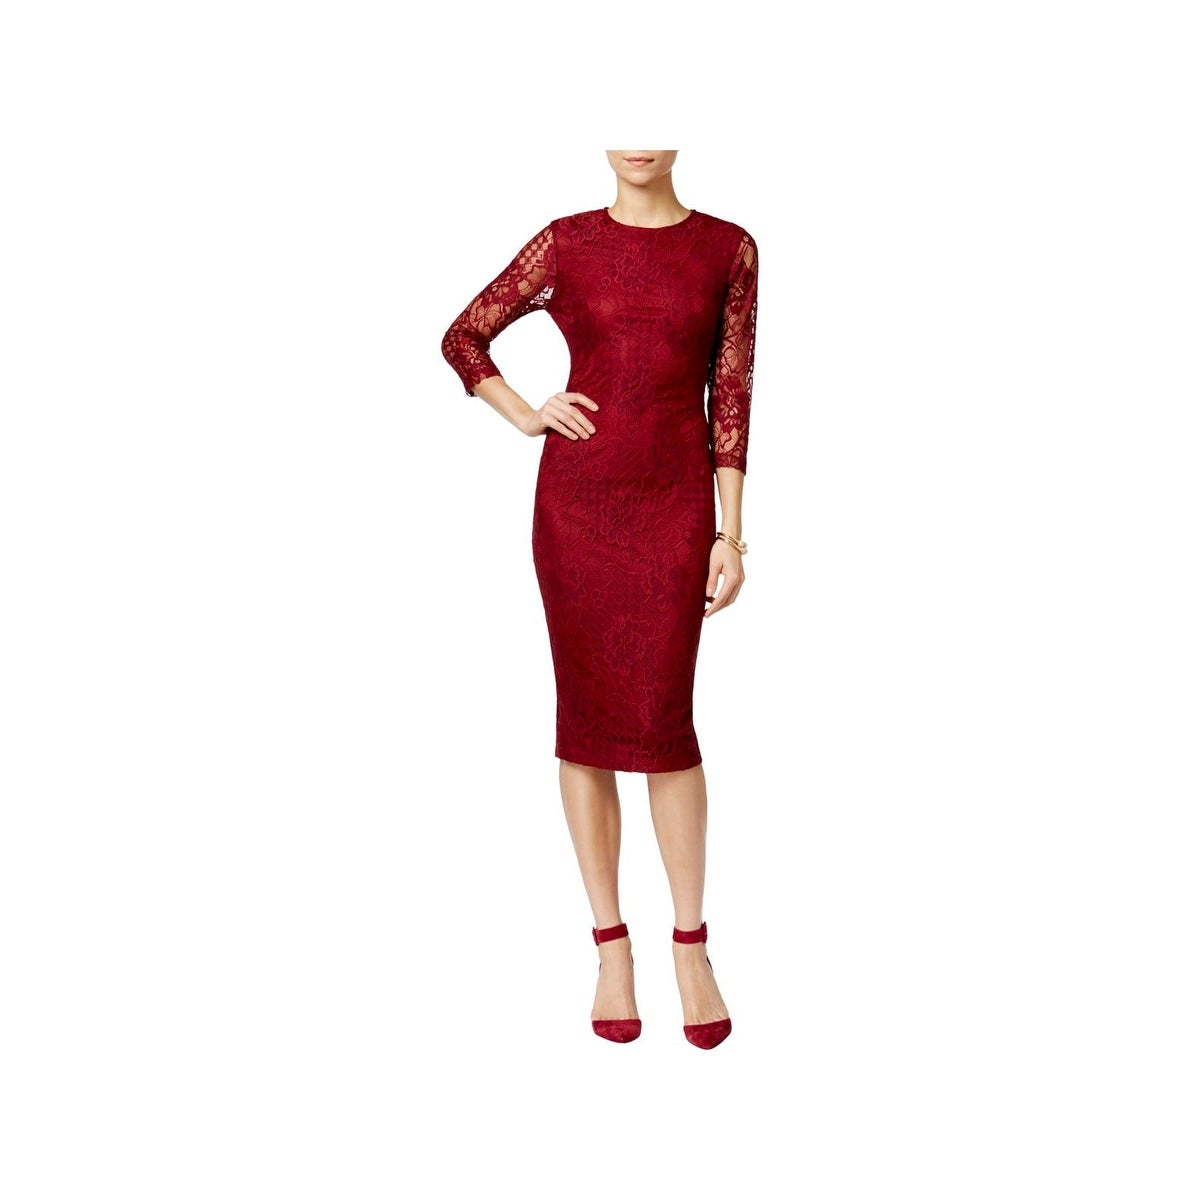 9dd060a73adb5 Jessica Simpson Dresses   Find Great Women's Clothing Deals Shopping at  Overstock